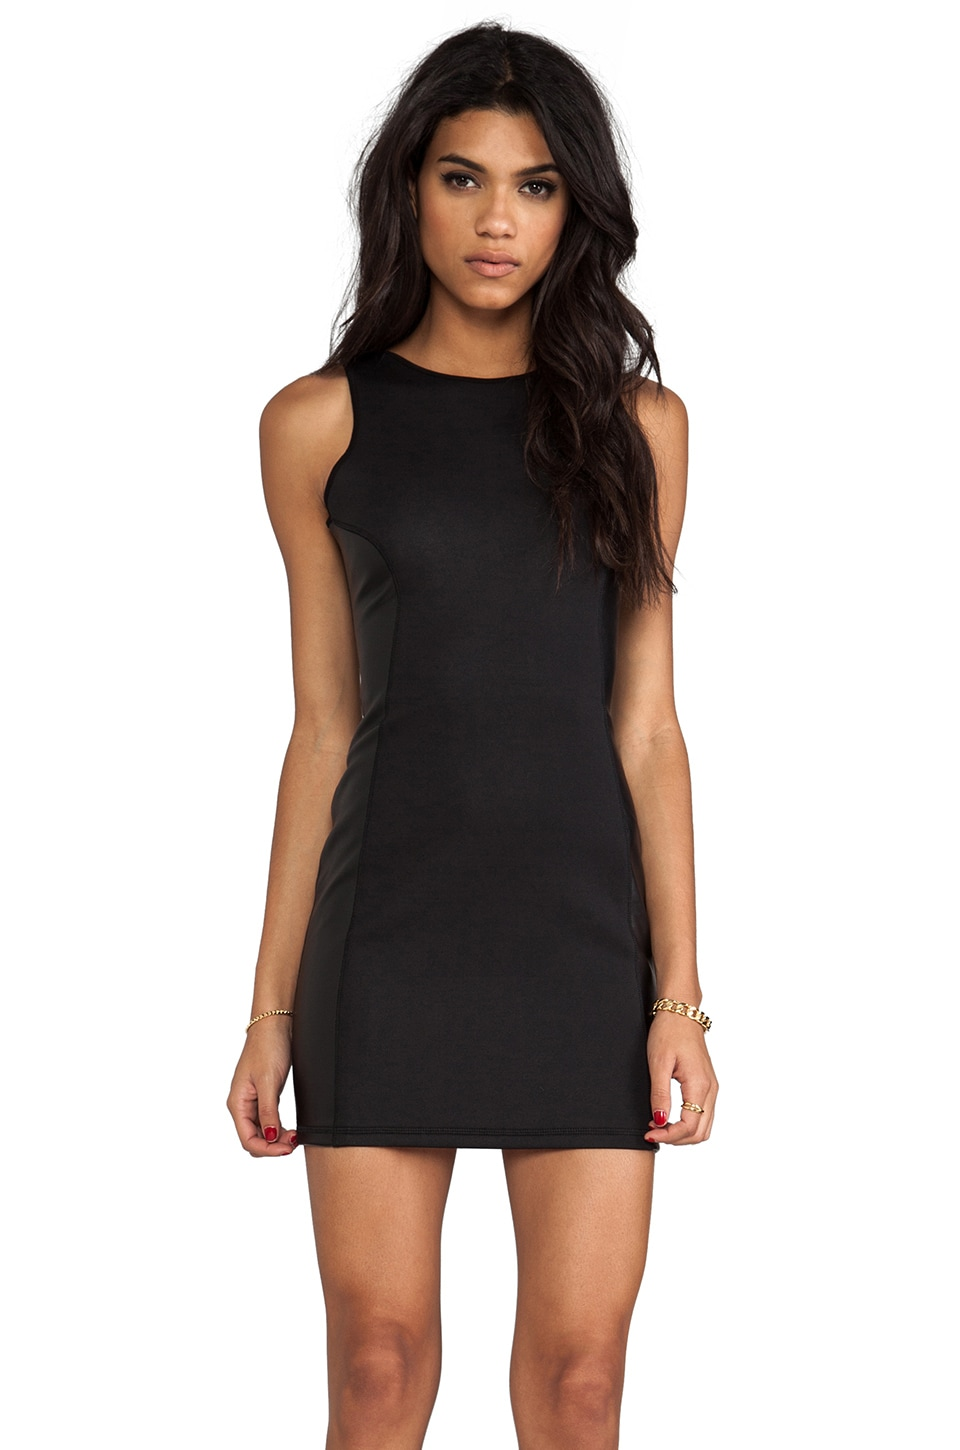 This is a Love Song Eye of the Tiger Dress in Black/Black